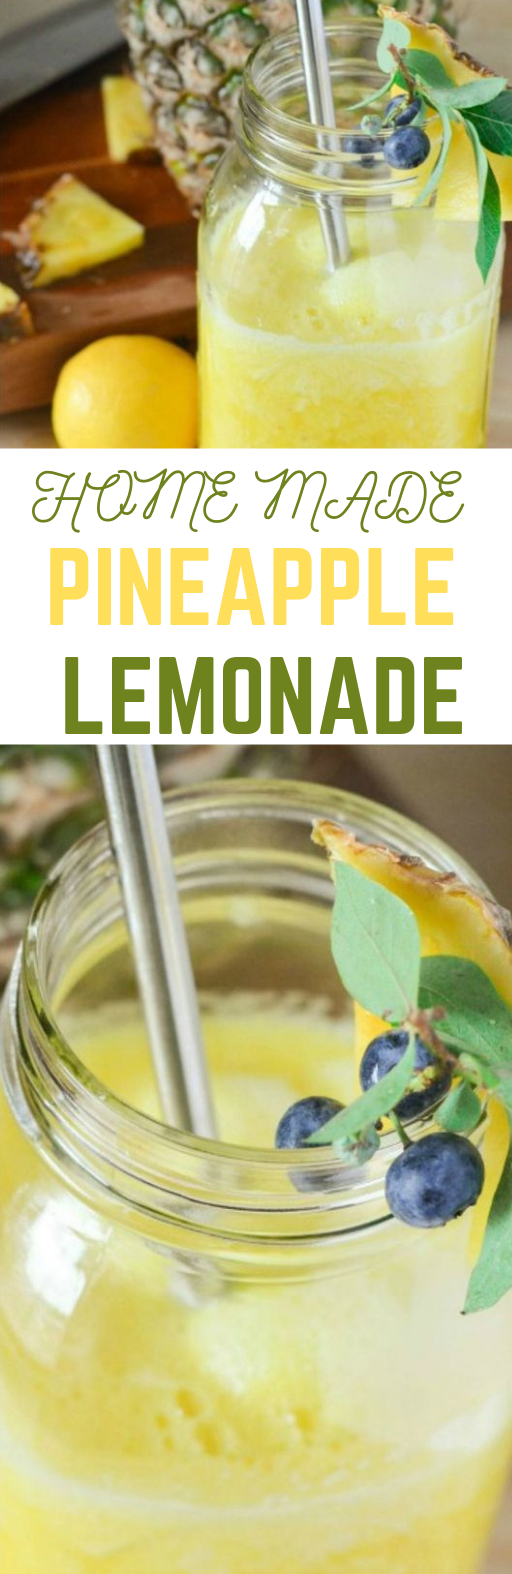 Pineapple Lemonade #recipe #drink